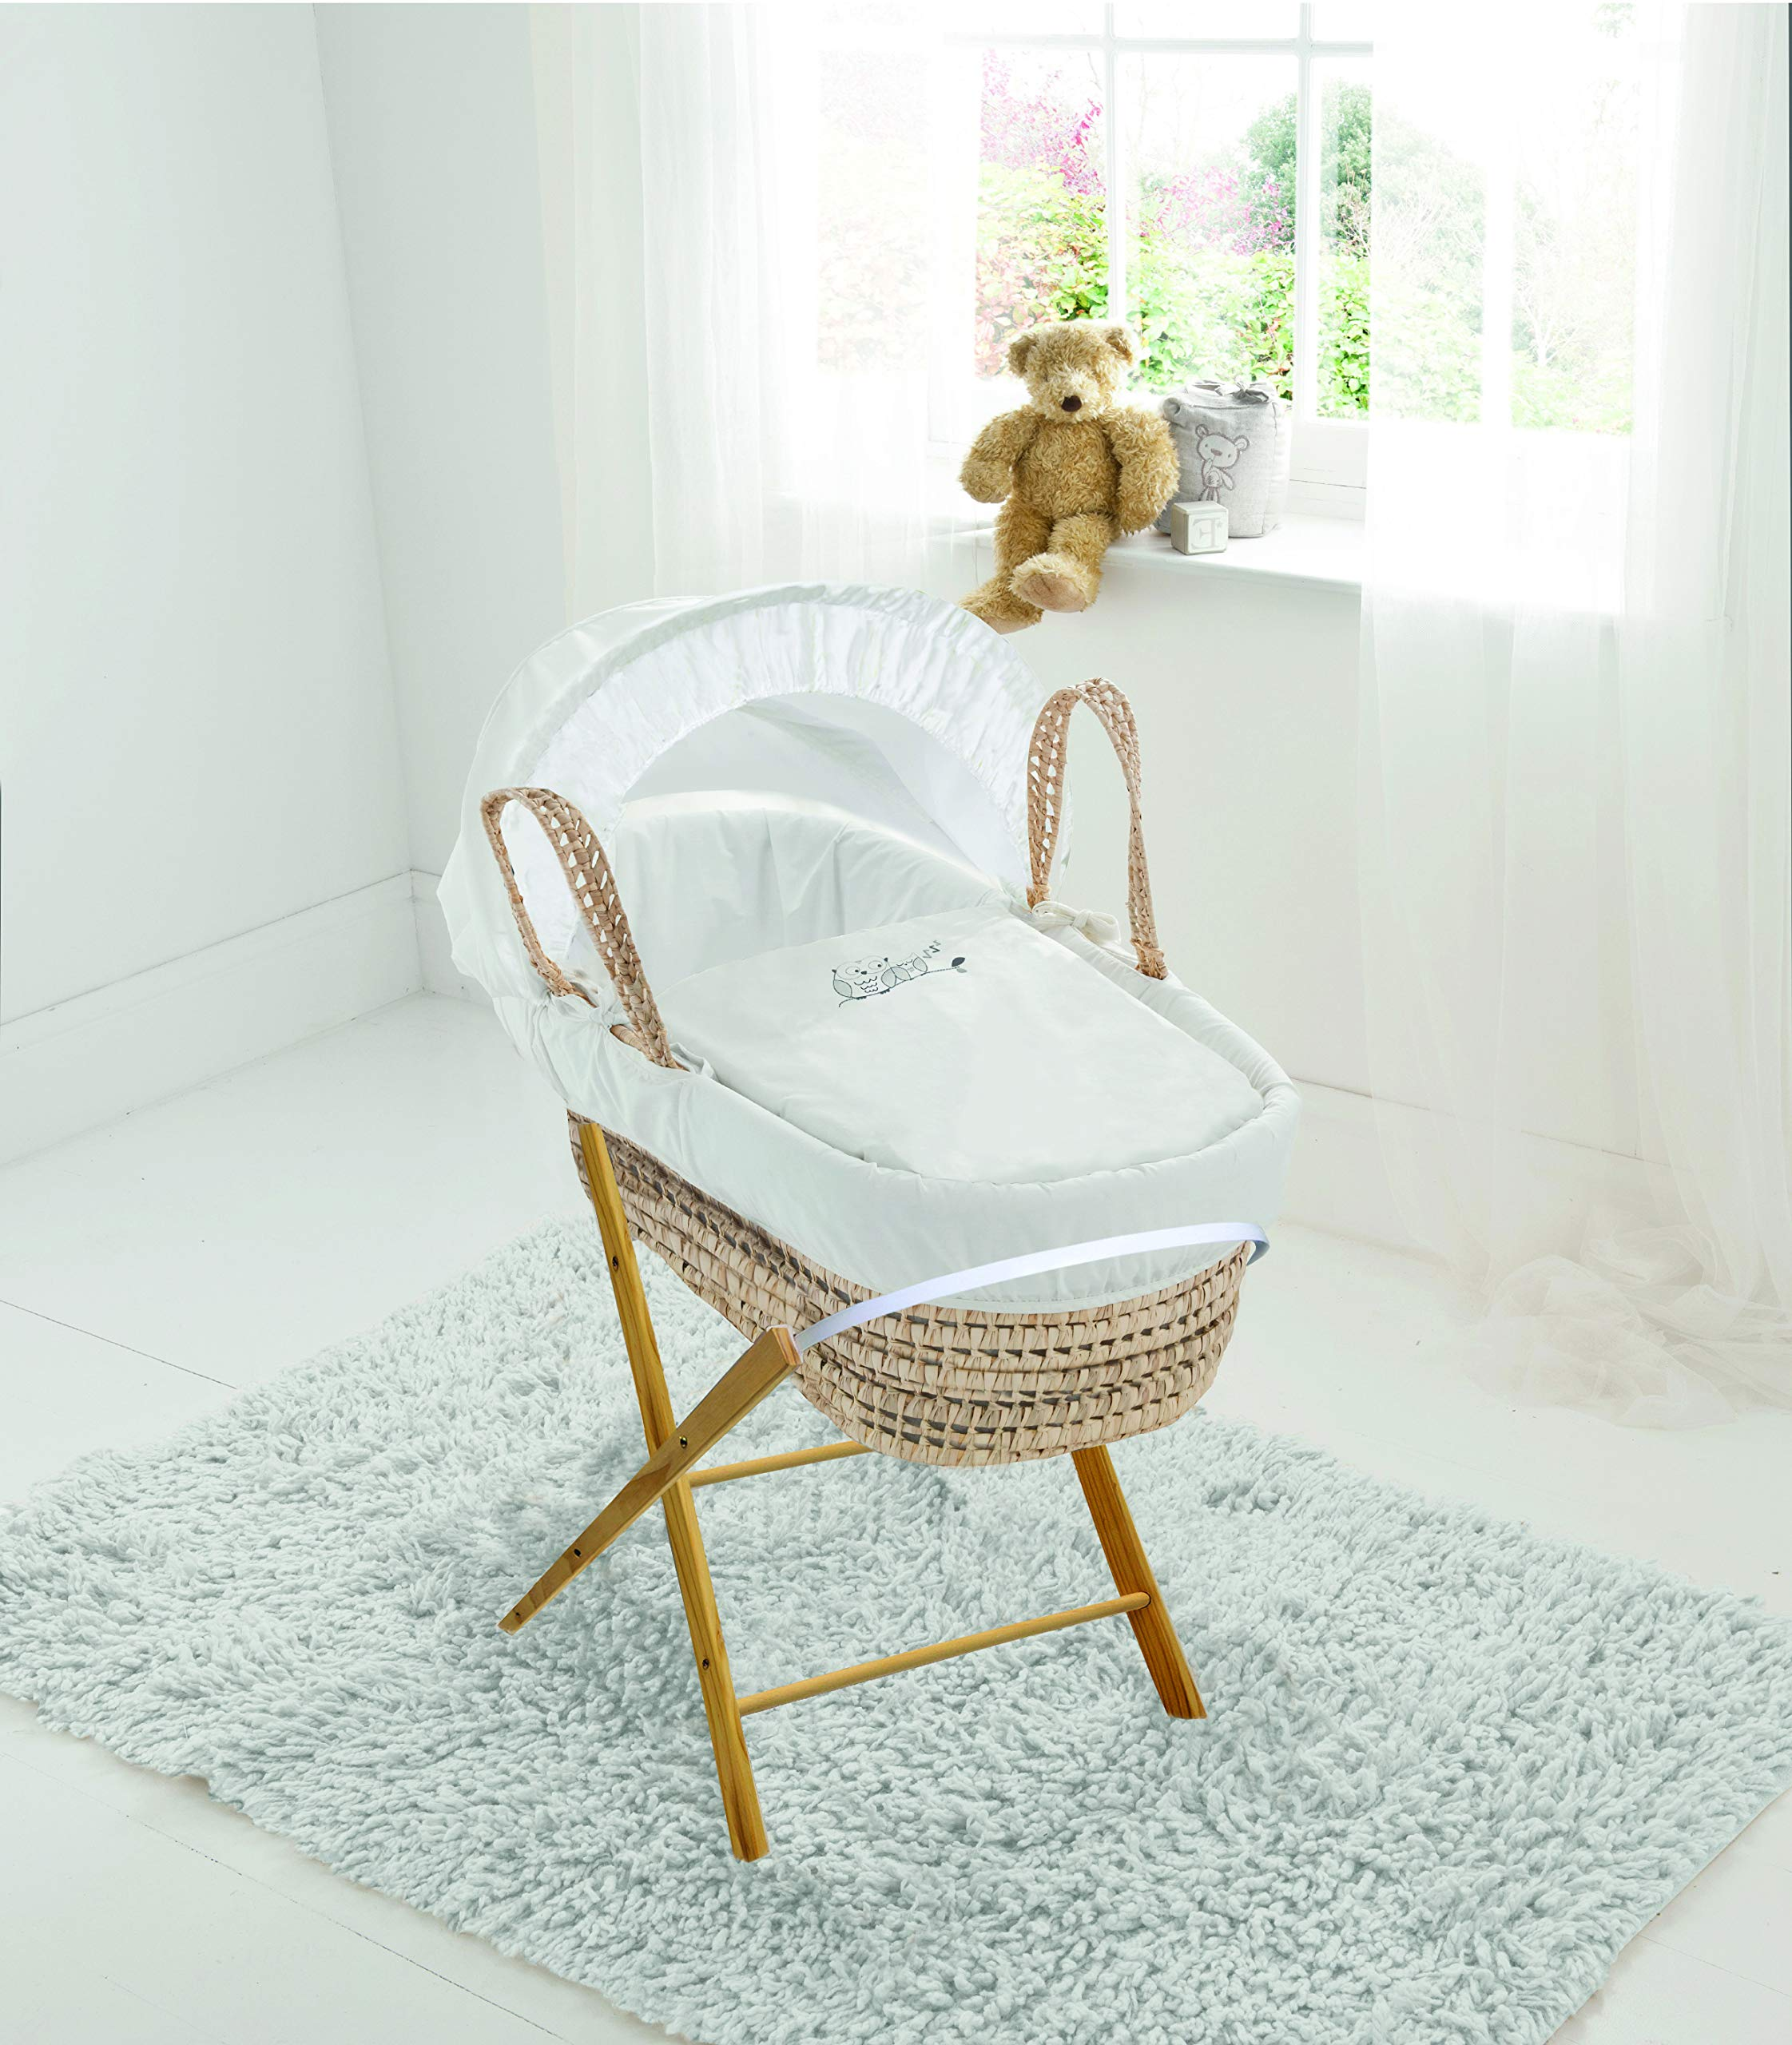 Sleepy Little Owl Palm Moses Basket & Folding Stand Elegant Baby Suitable from newborn for up to 9kg, this Moses Basket uses Easy-care Poly Cotton with a soft padding surround Suitable from newborn to 9 months It also includes a comfortable mattress and an adjustable hood perfect to create a cosy sleeping space for your precious little one 1